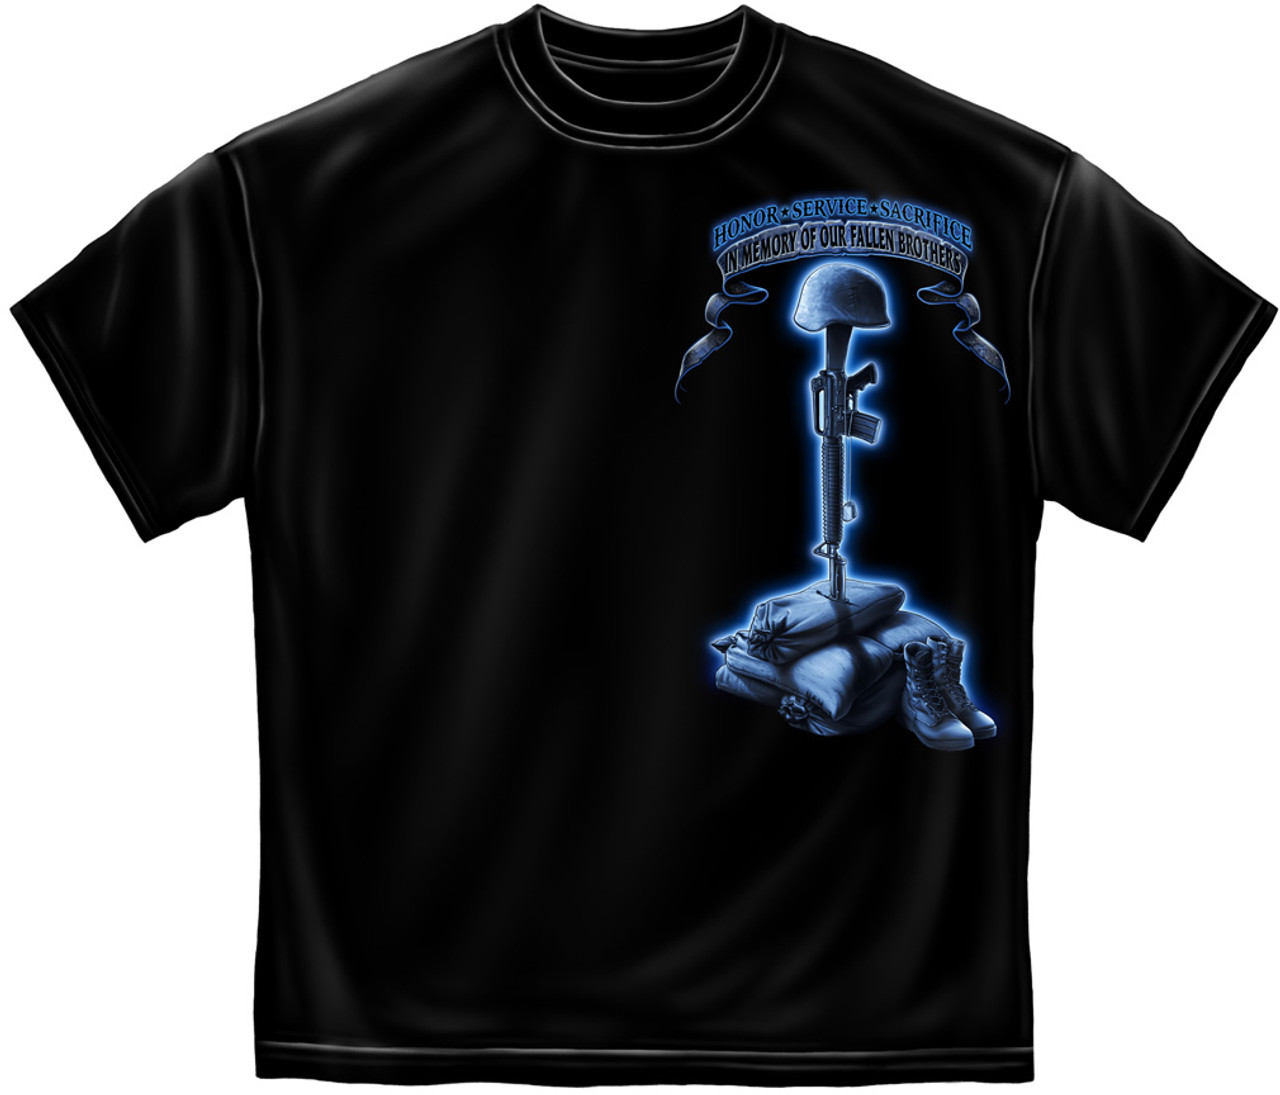 """**(OFFICIALLY-LICENSED-U.S.SERVICE-VETERANS,""""YOU-WILL-NEVER-BE-FORGOTTEN,IN-MEMORY-OF-OUR-FALLEN-BROTHERS"""",NICE-DETAILED-CUSTOM-GRAPHIC-PRINTED/PREMIUM-DOUBLE-SIDED-TEES:)**"""